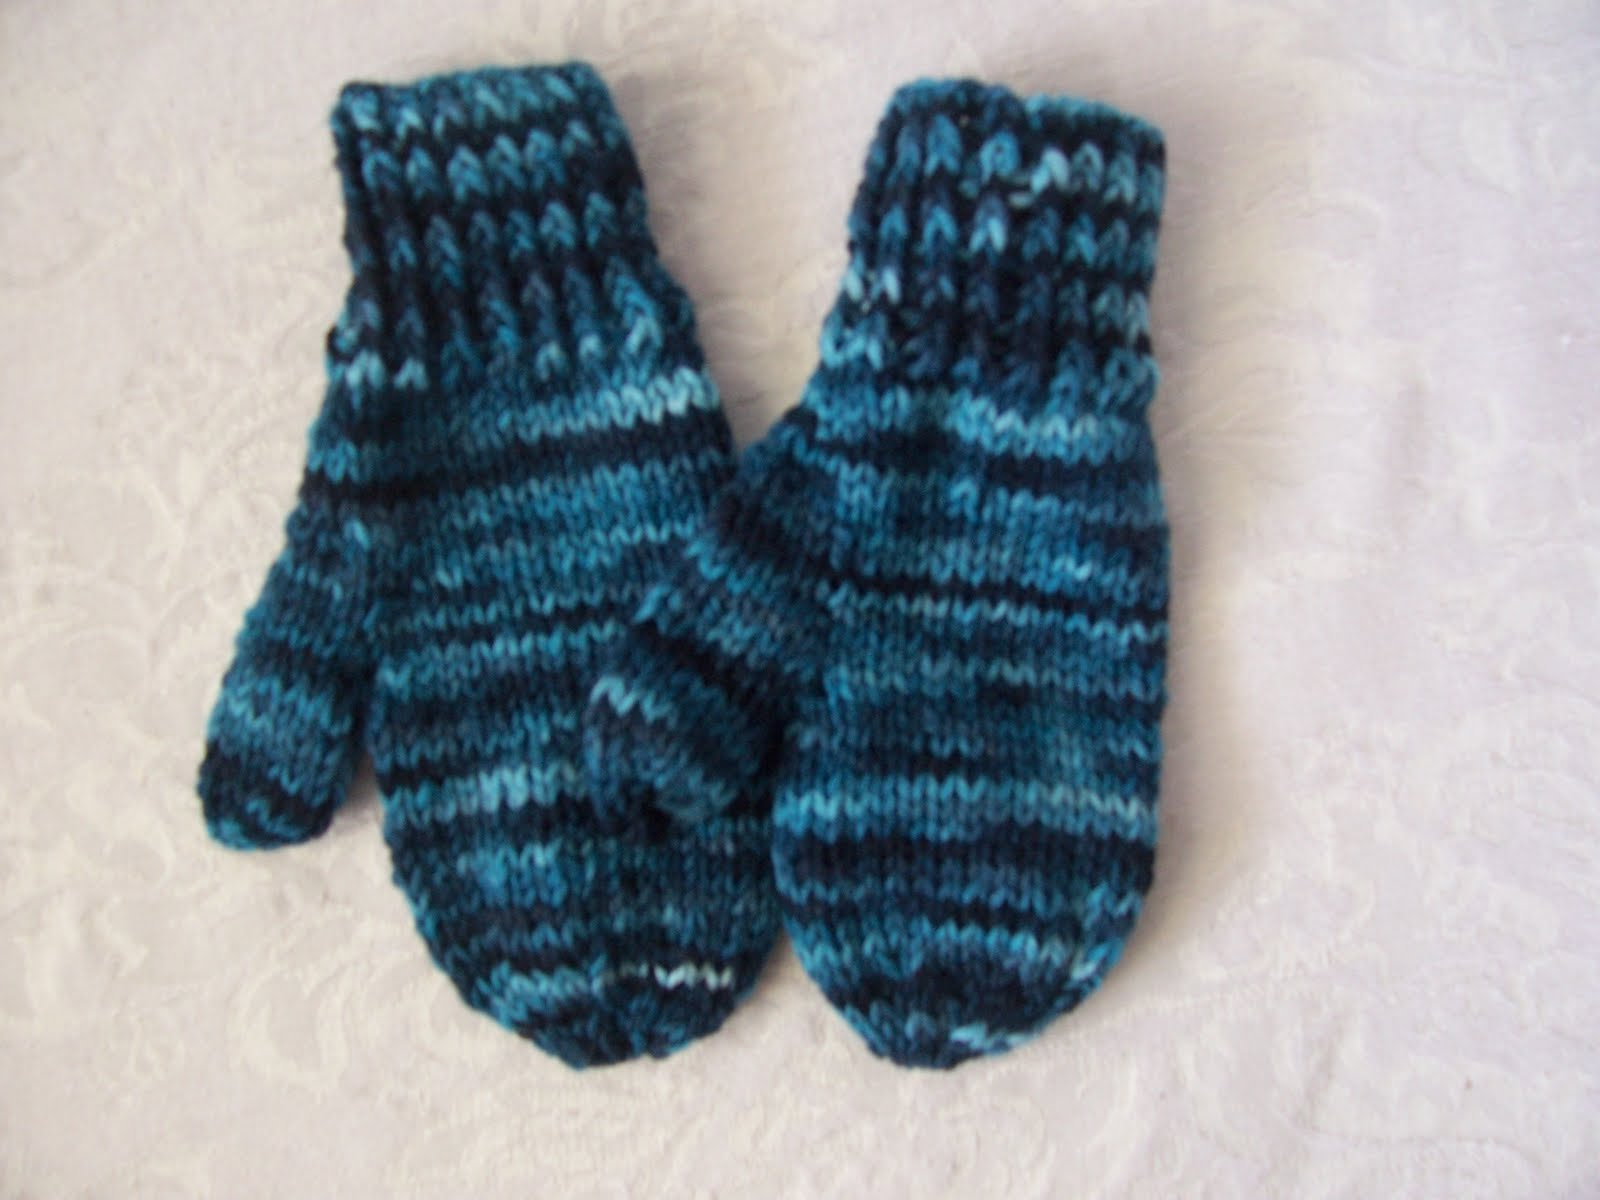 CHILDRENS MITTENS PATTERNS Free Patterns